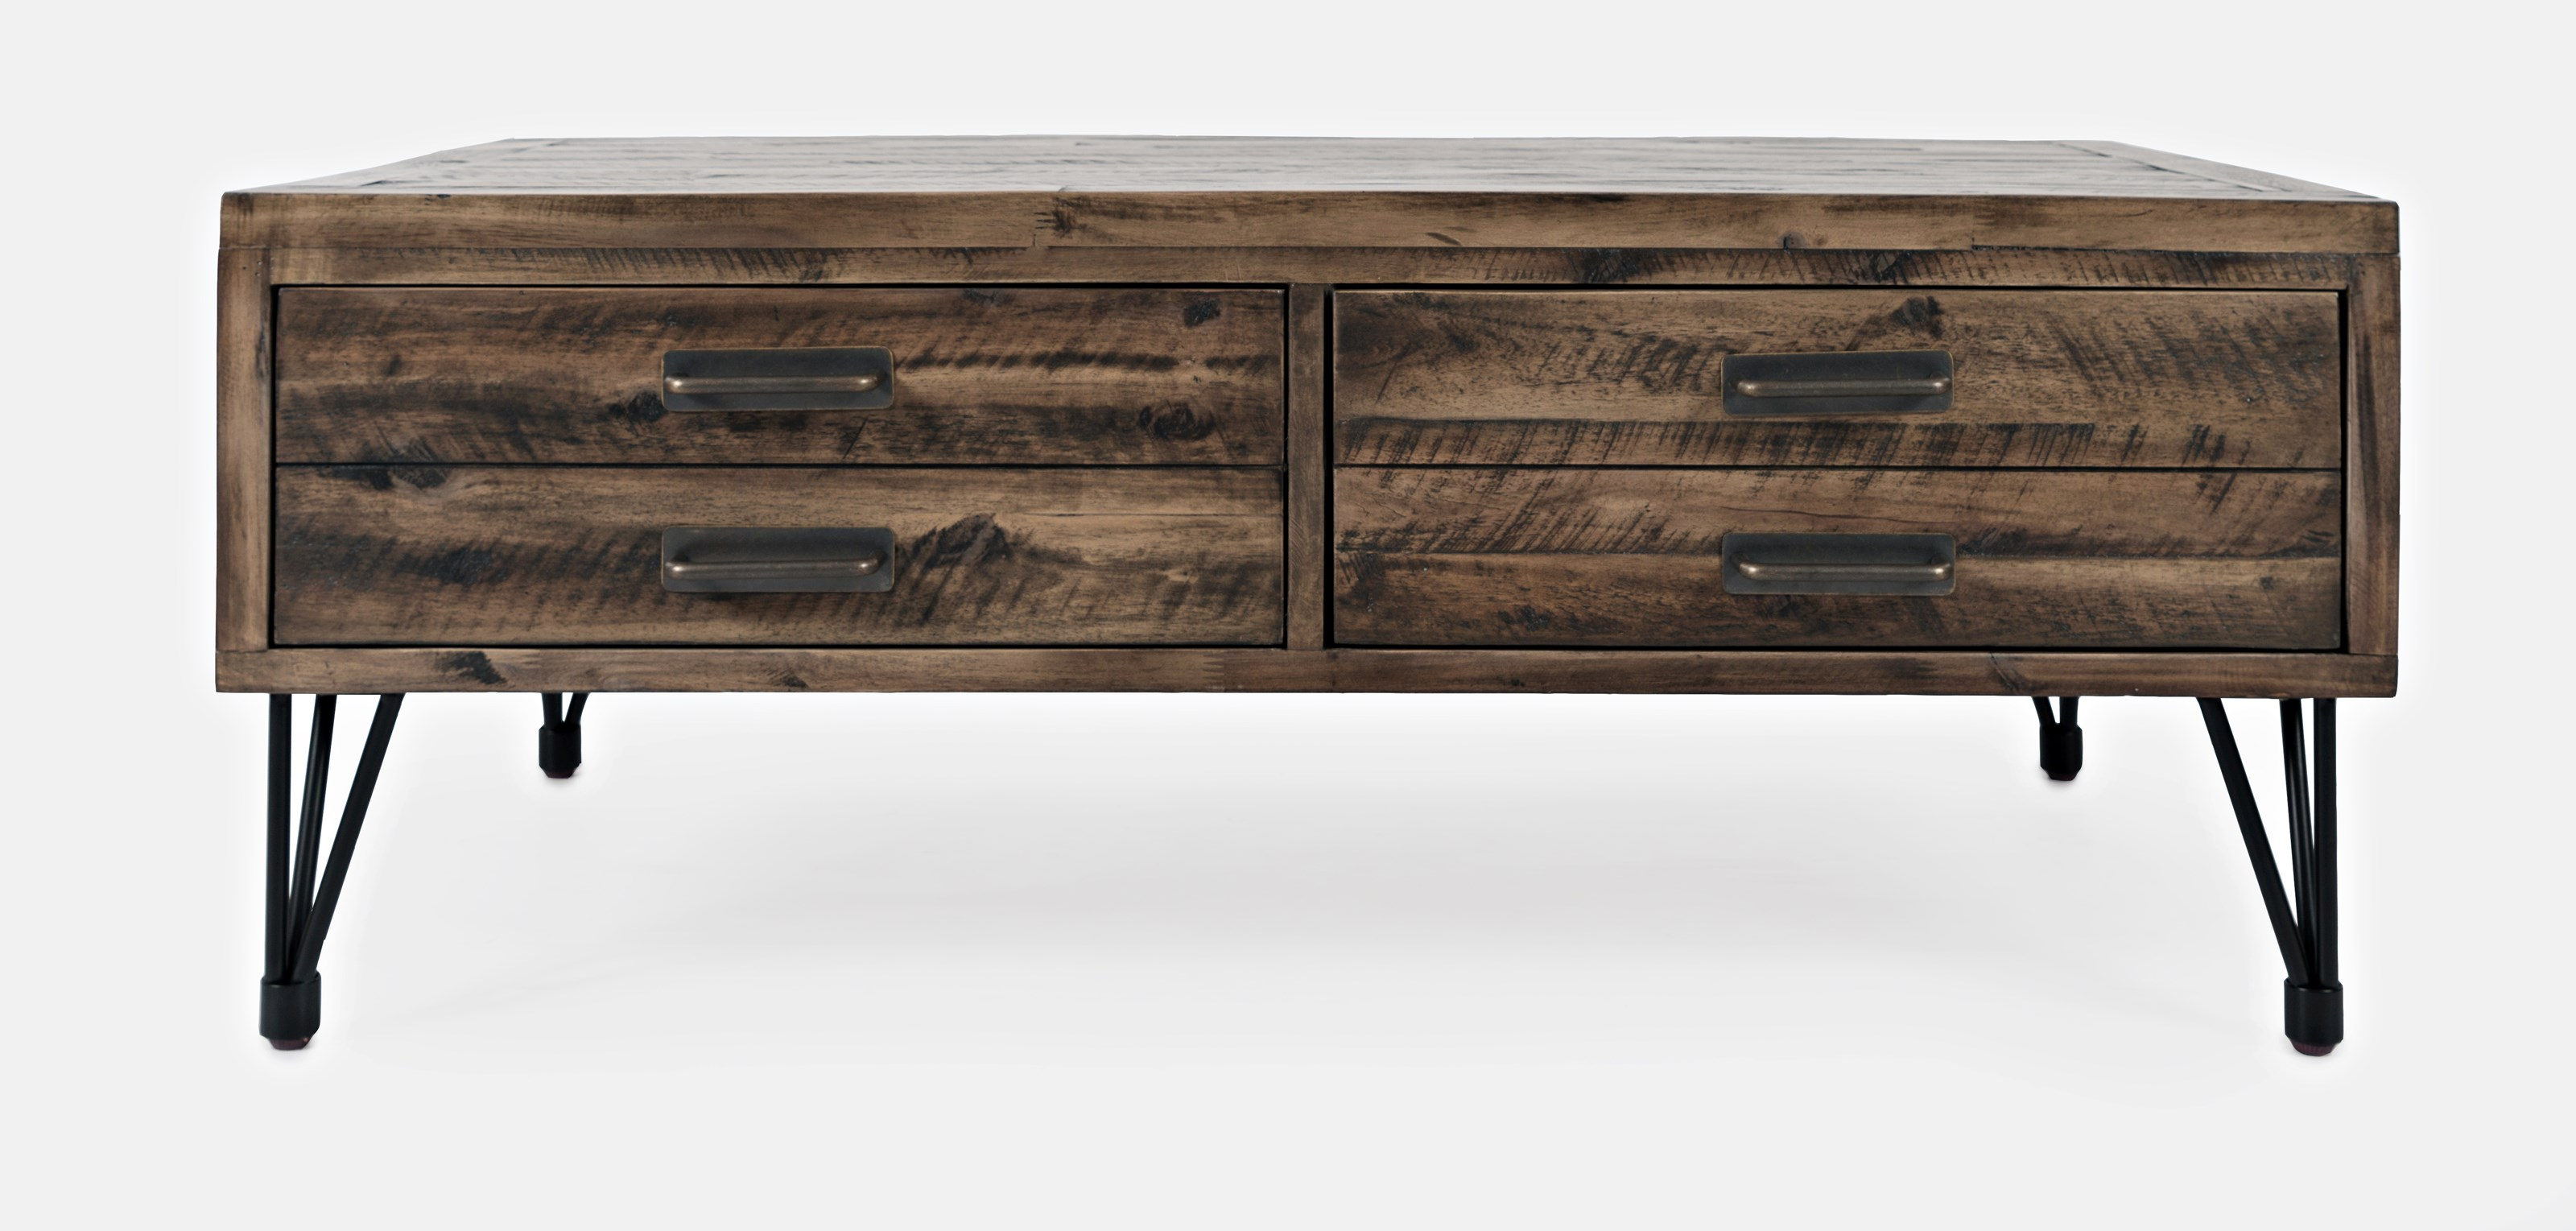 Blackstone Coffee Table by Jofran at Value City Furniture